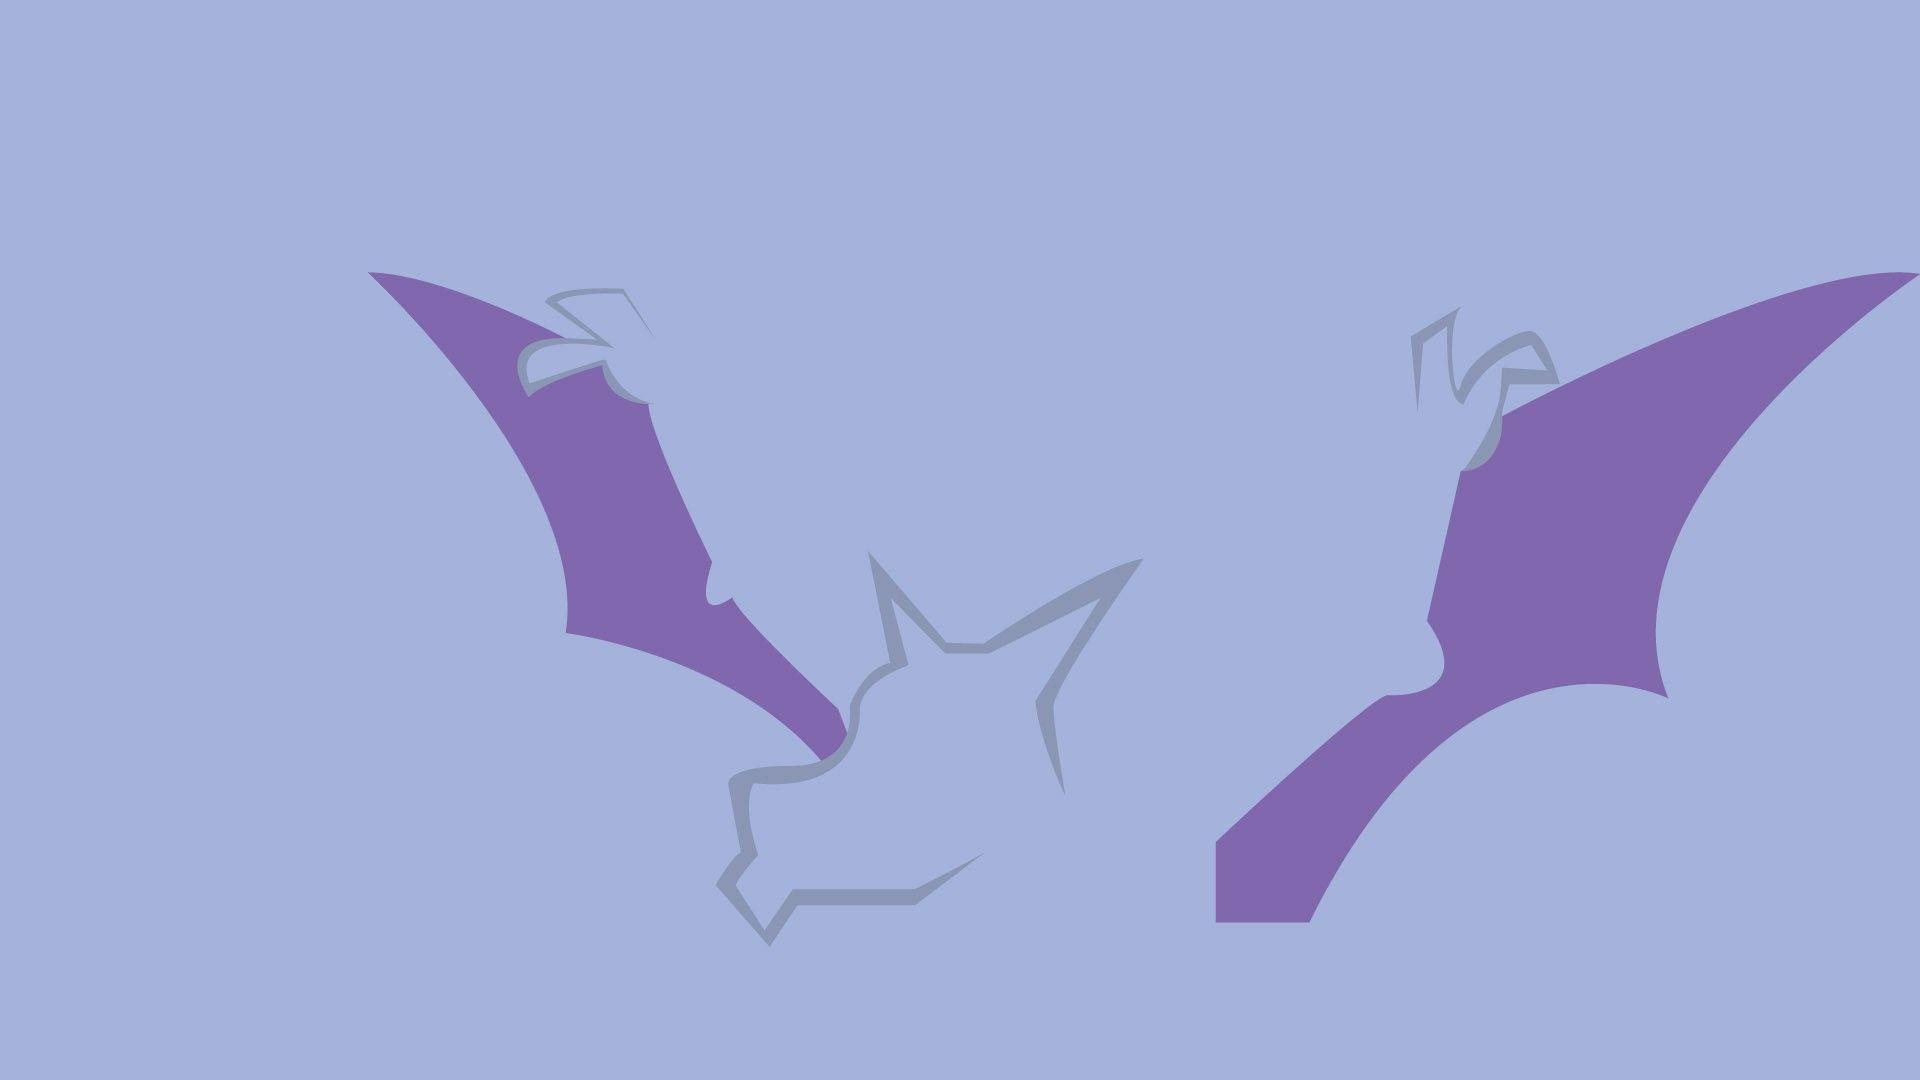 Games: Aerodactyl Pokemon Wallpaper Background Free 1920x1080 for ...